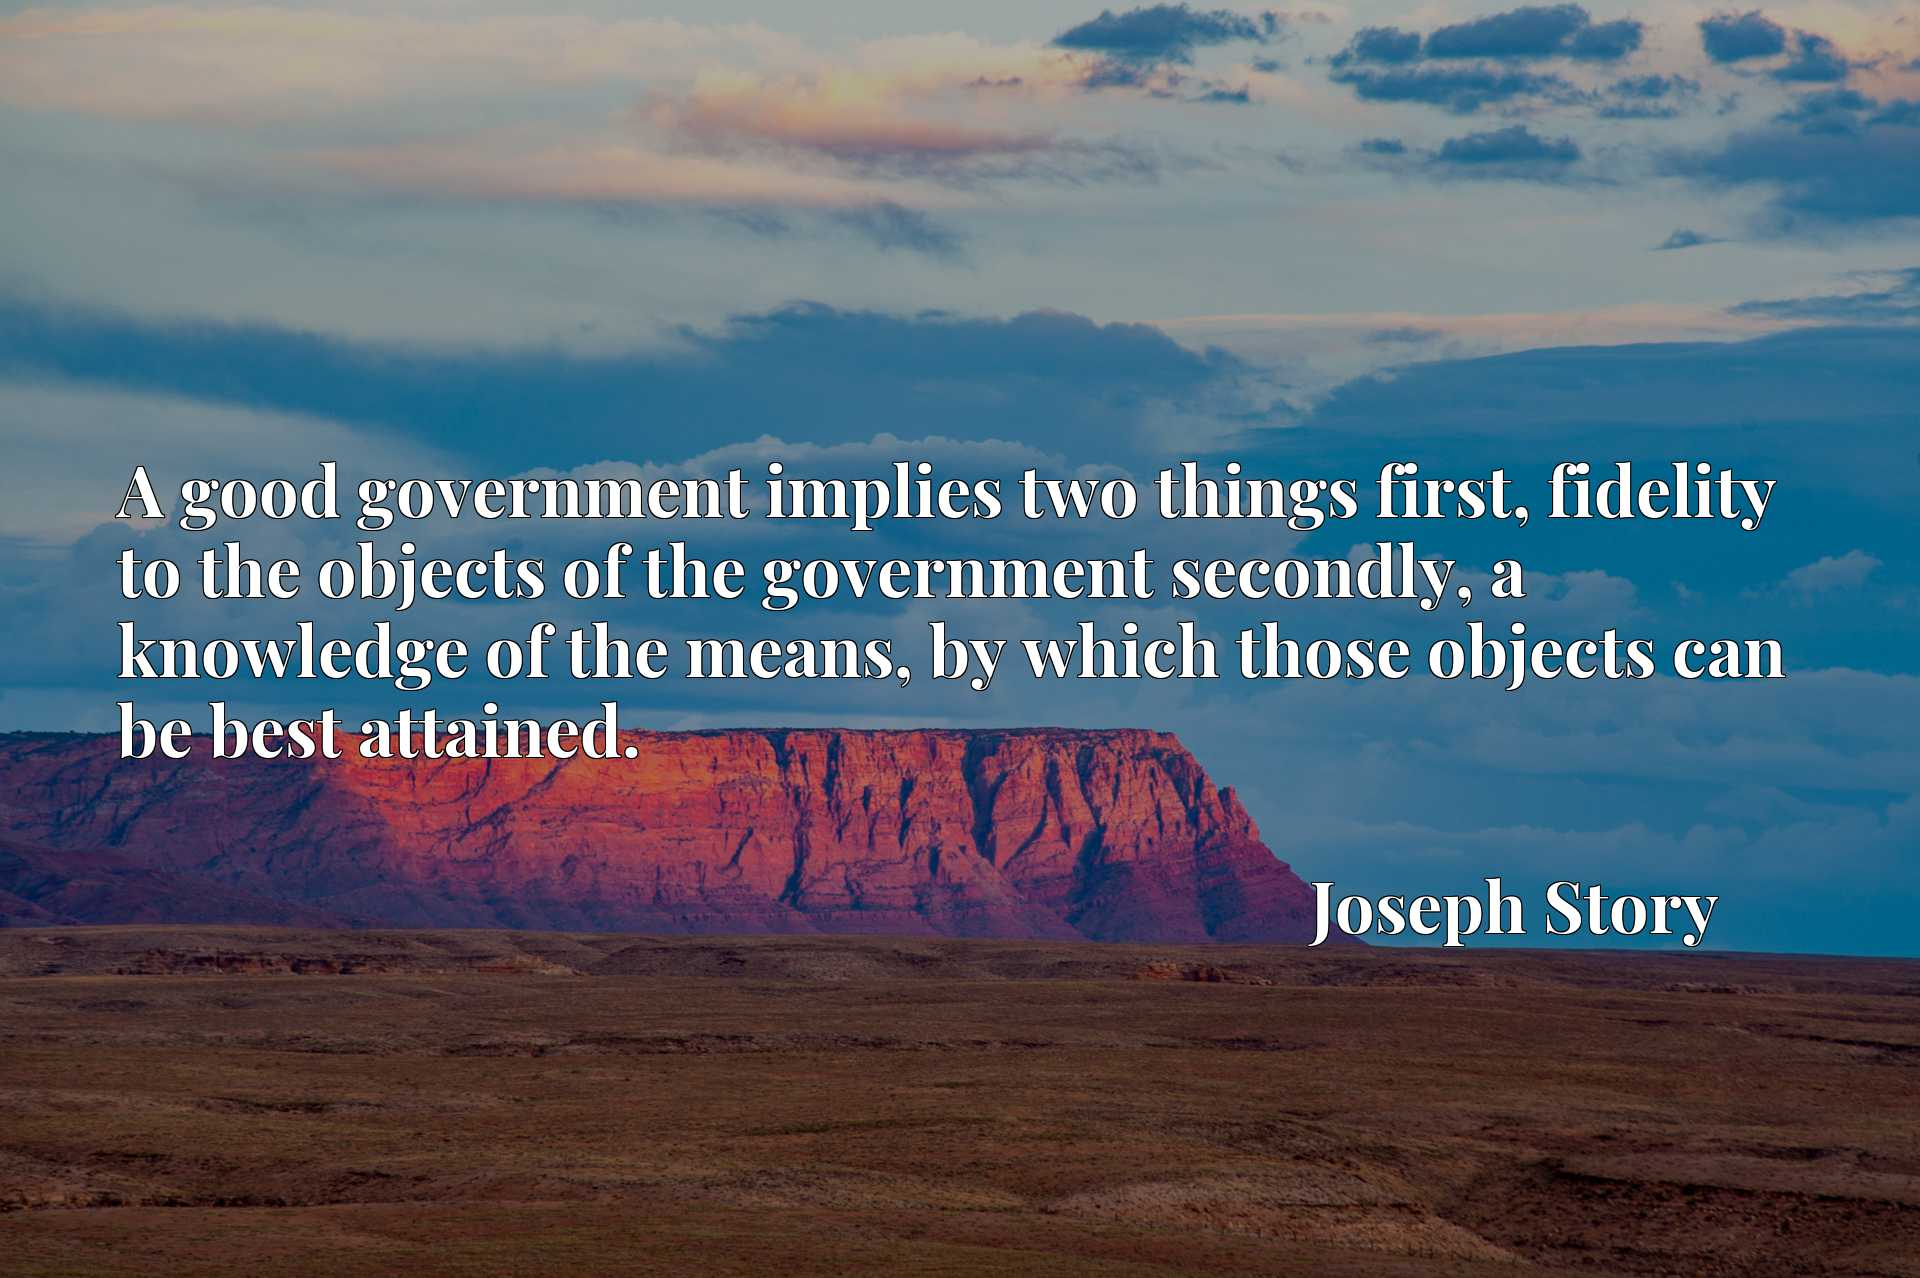 A good government implies two things first, fidelity to the objects of the government secondly, a knowledge of the means, by which those objects can be best attained.